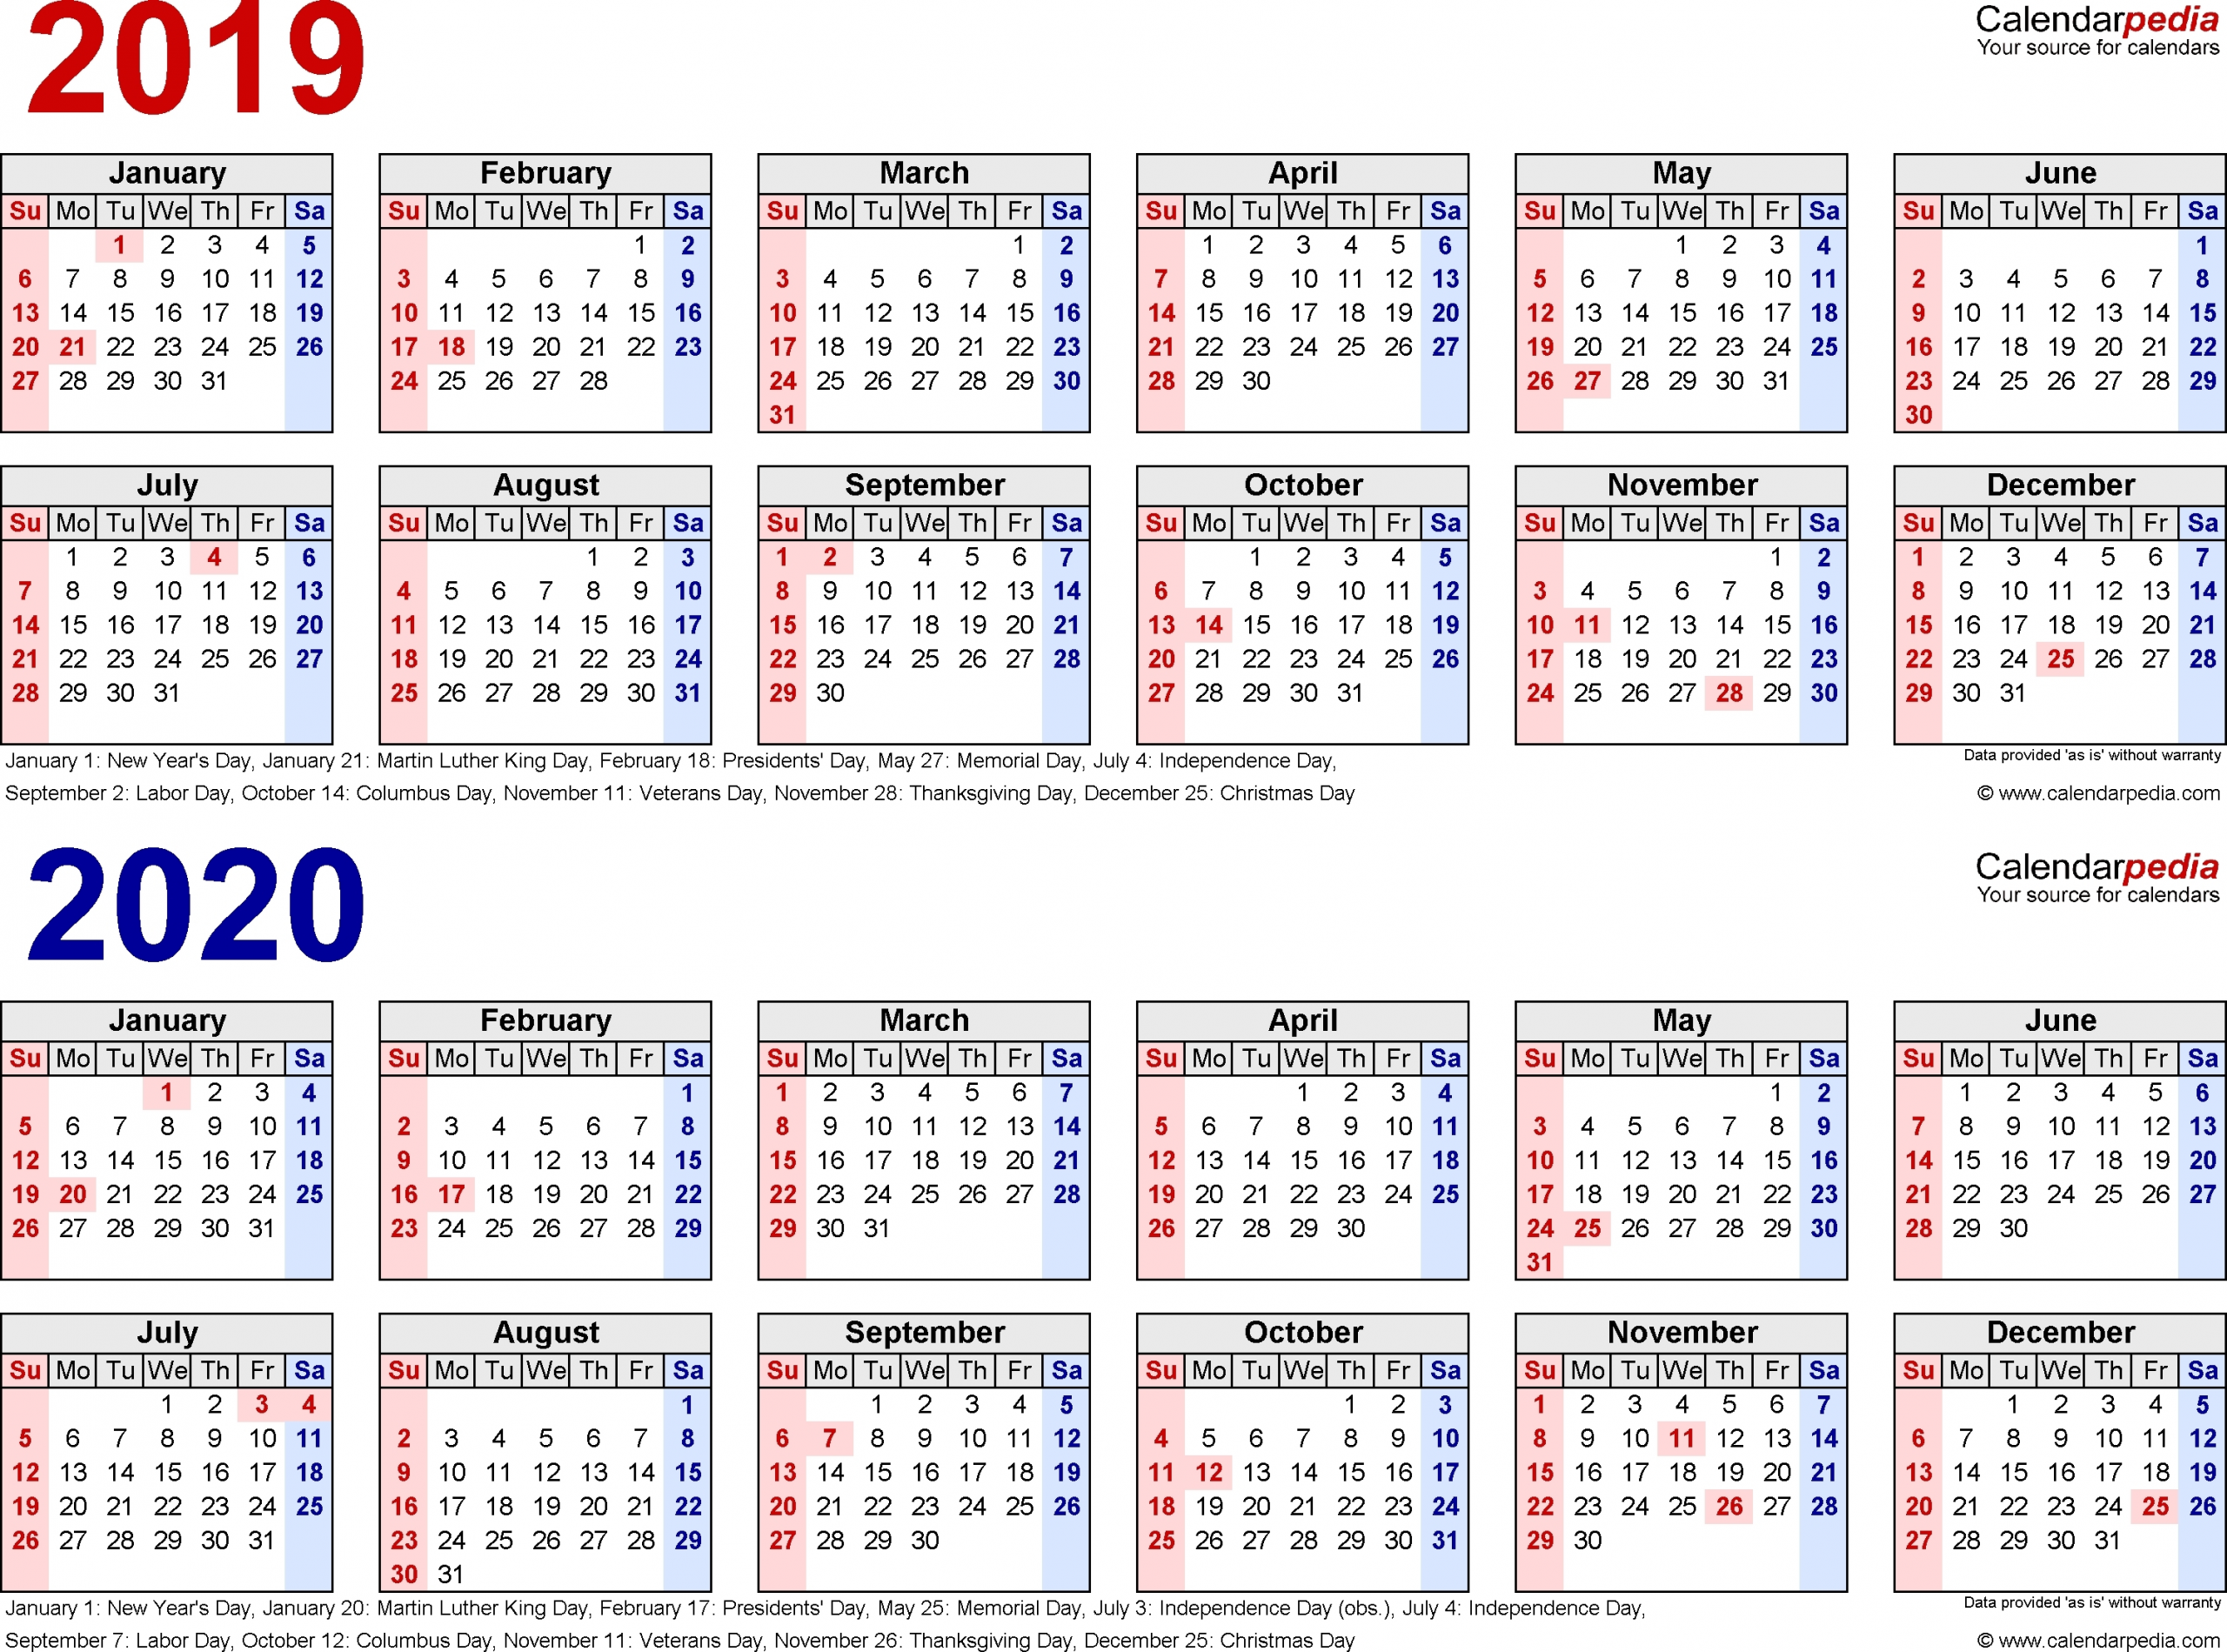 Printable Calendar One Week Per Page 2020 - Calendar Inspiration Design within Sample One Page Multi Year Calendars Image